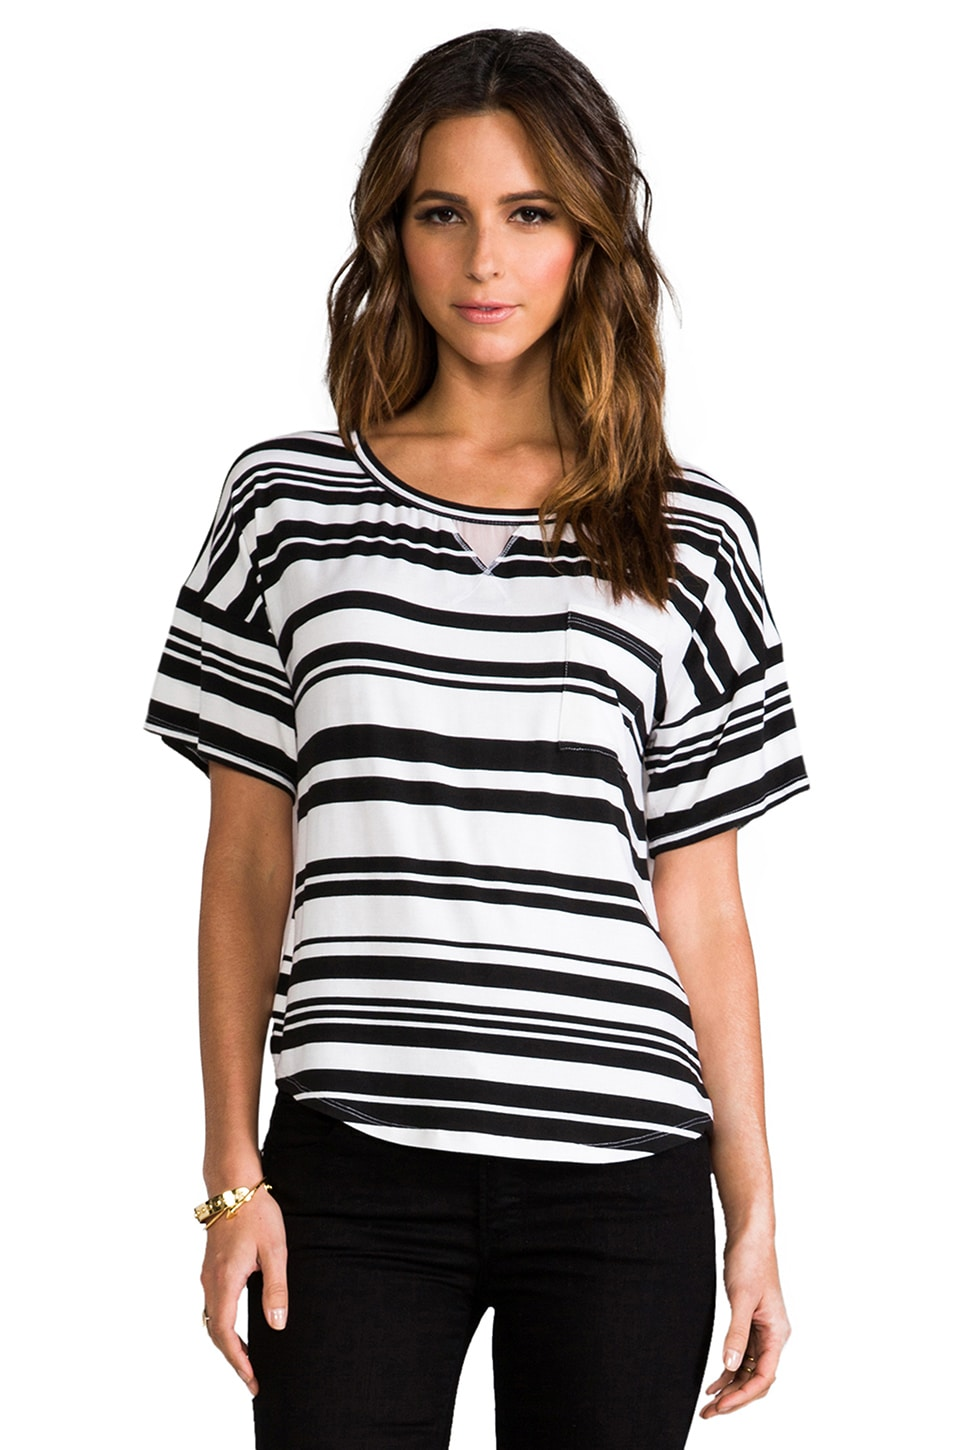 Heather Silk Back Stripe Tee in Black & White